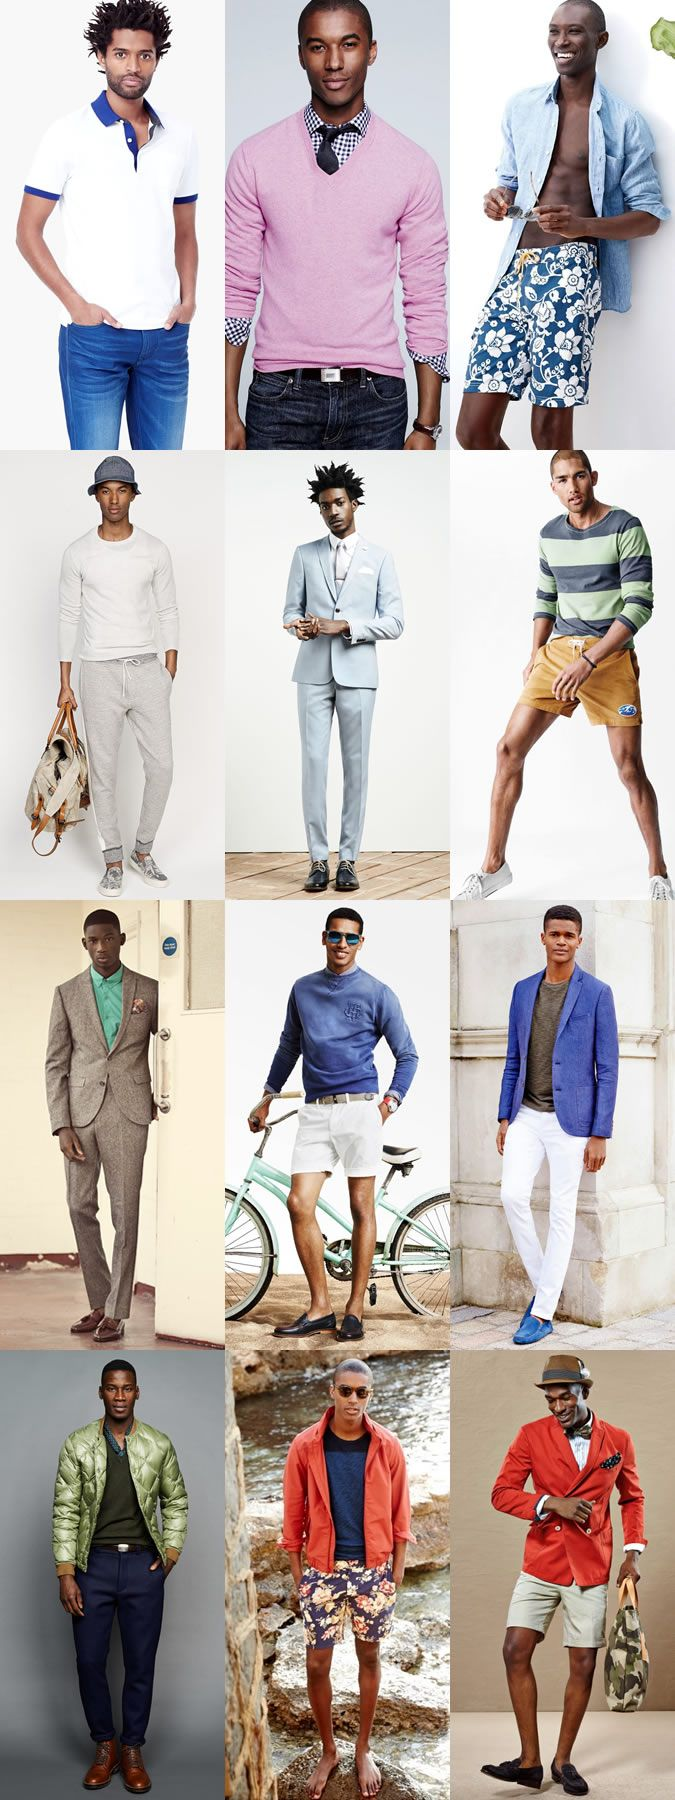 Black dress match with what colour - Colours That Match Or Complement Dark Black Skin Men Outfit Inspiration Lookbook The